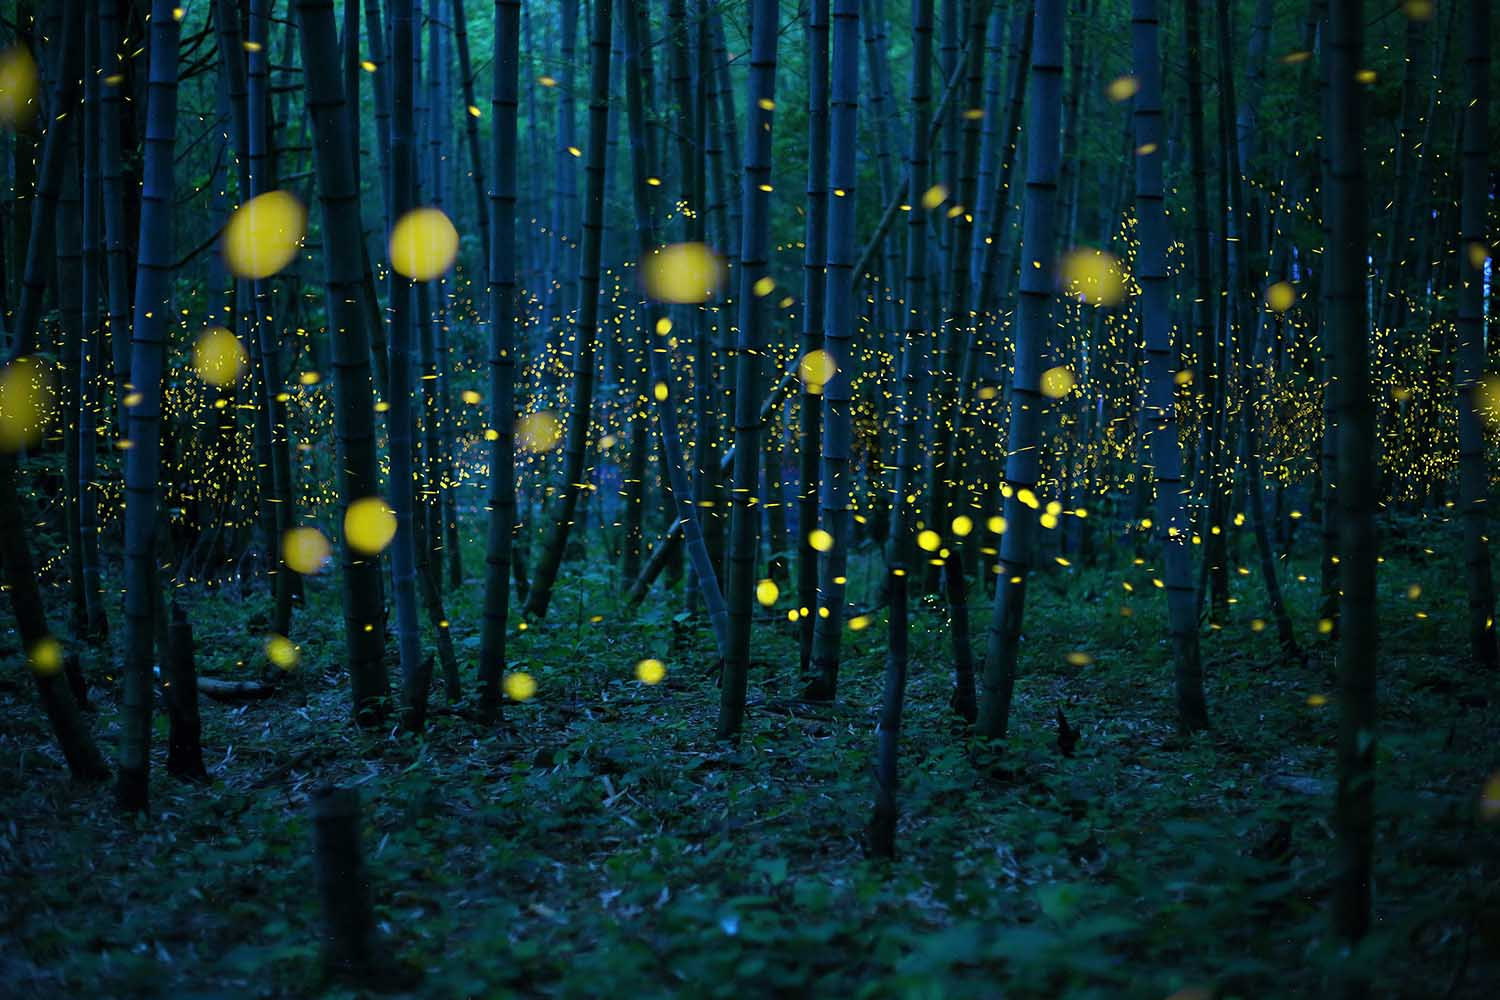 Fireflies_in_the_forest_(c)_kei_nomiyama